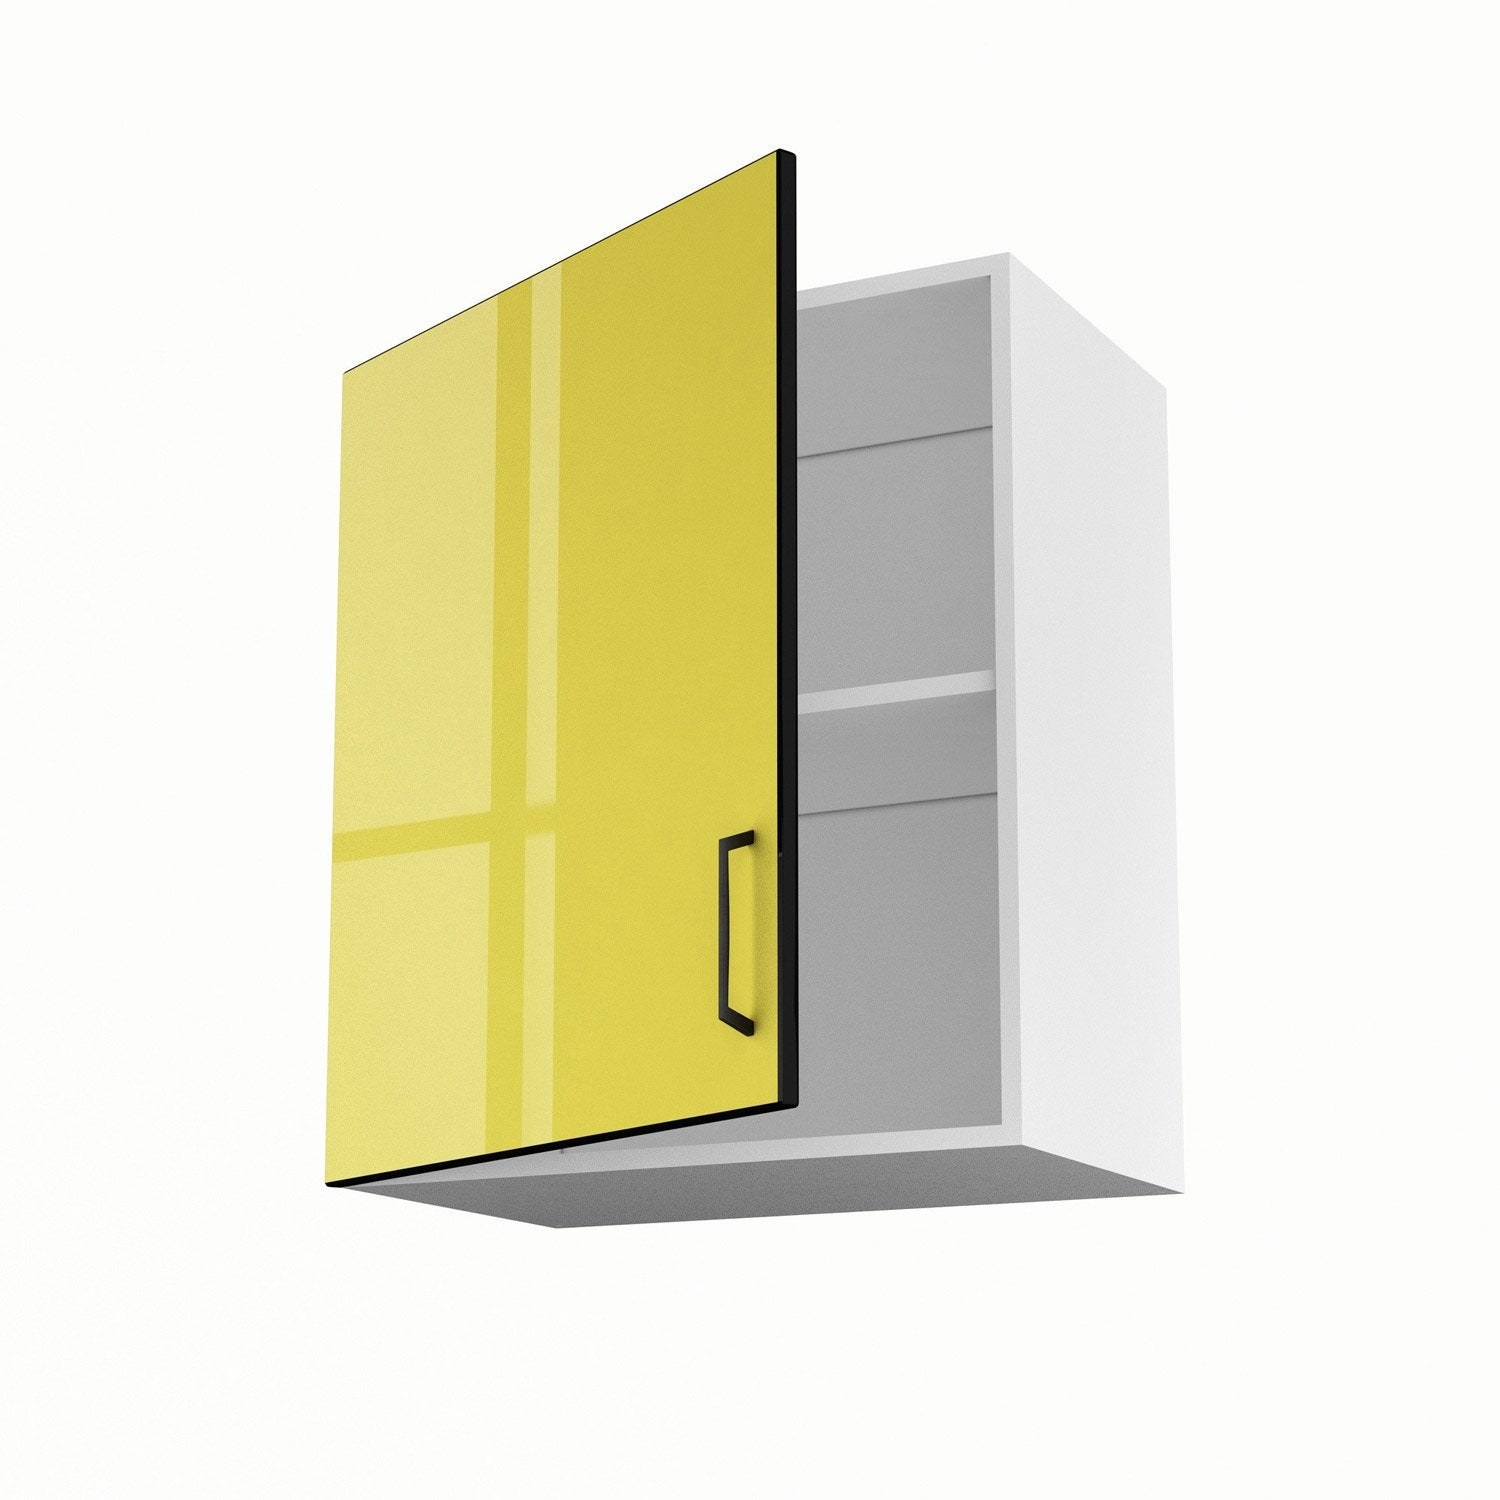 meuble de cuisine haut jaune 1 porte pop x x p. Black Bedroom Furniture Sets. Home Design Ideas